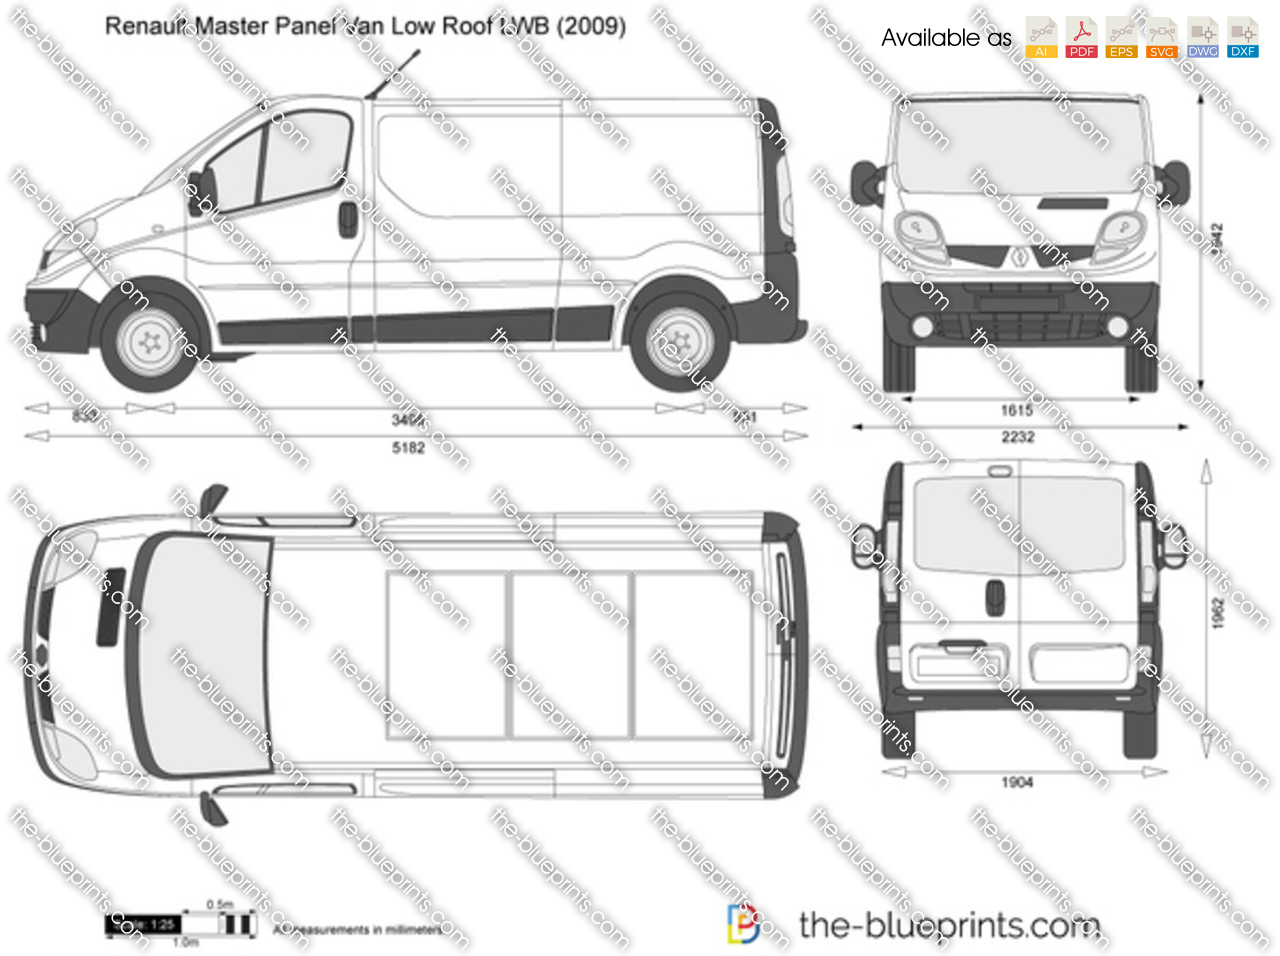 renault trafic panel van low roof lwb vector drawing. Black Bedroom Furniture Sets. Home Design Ideas